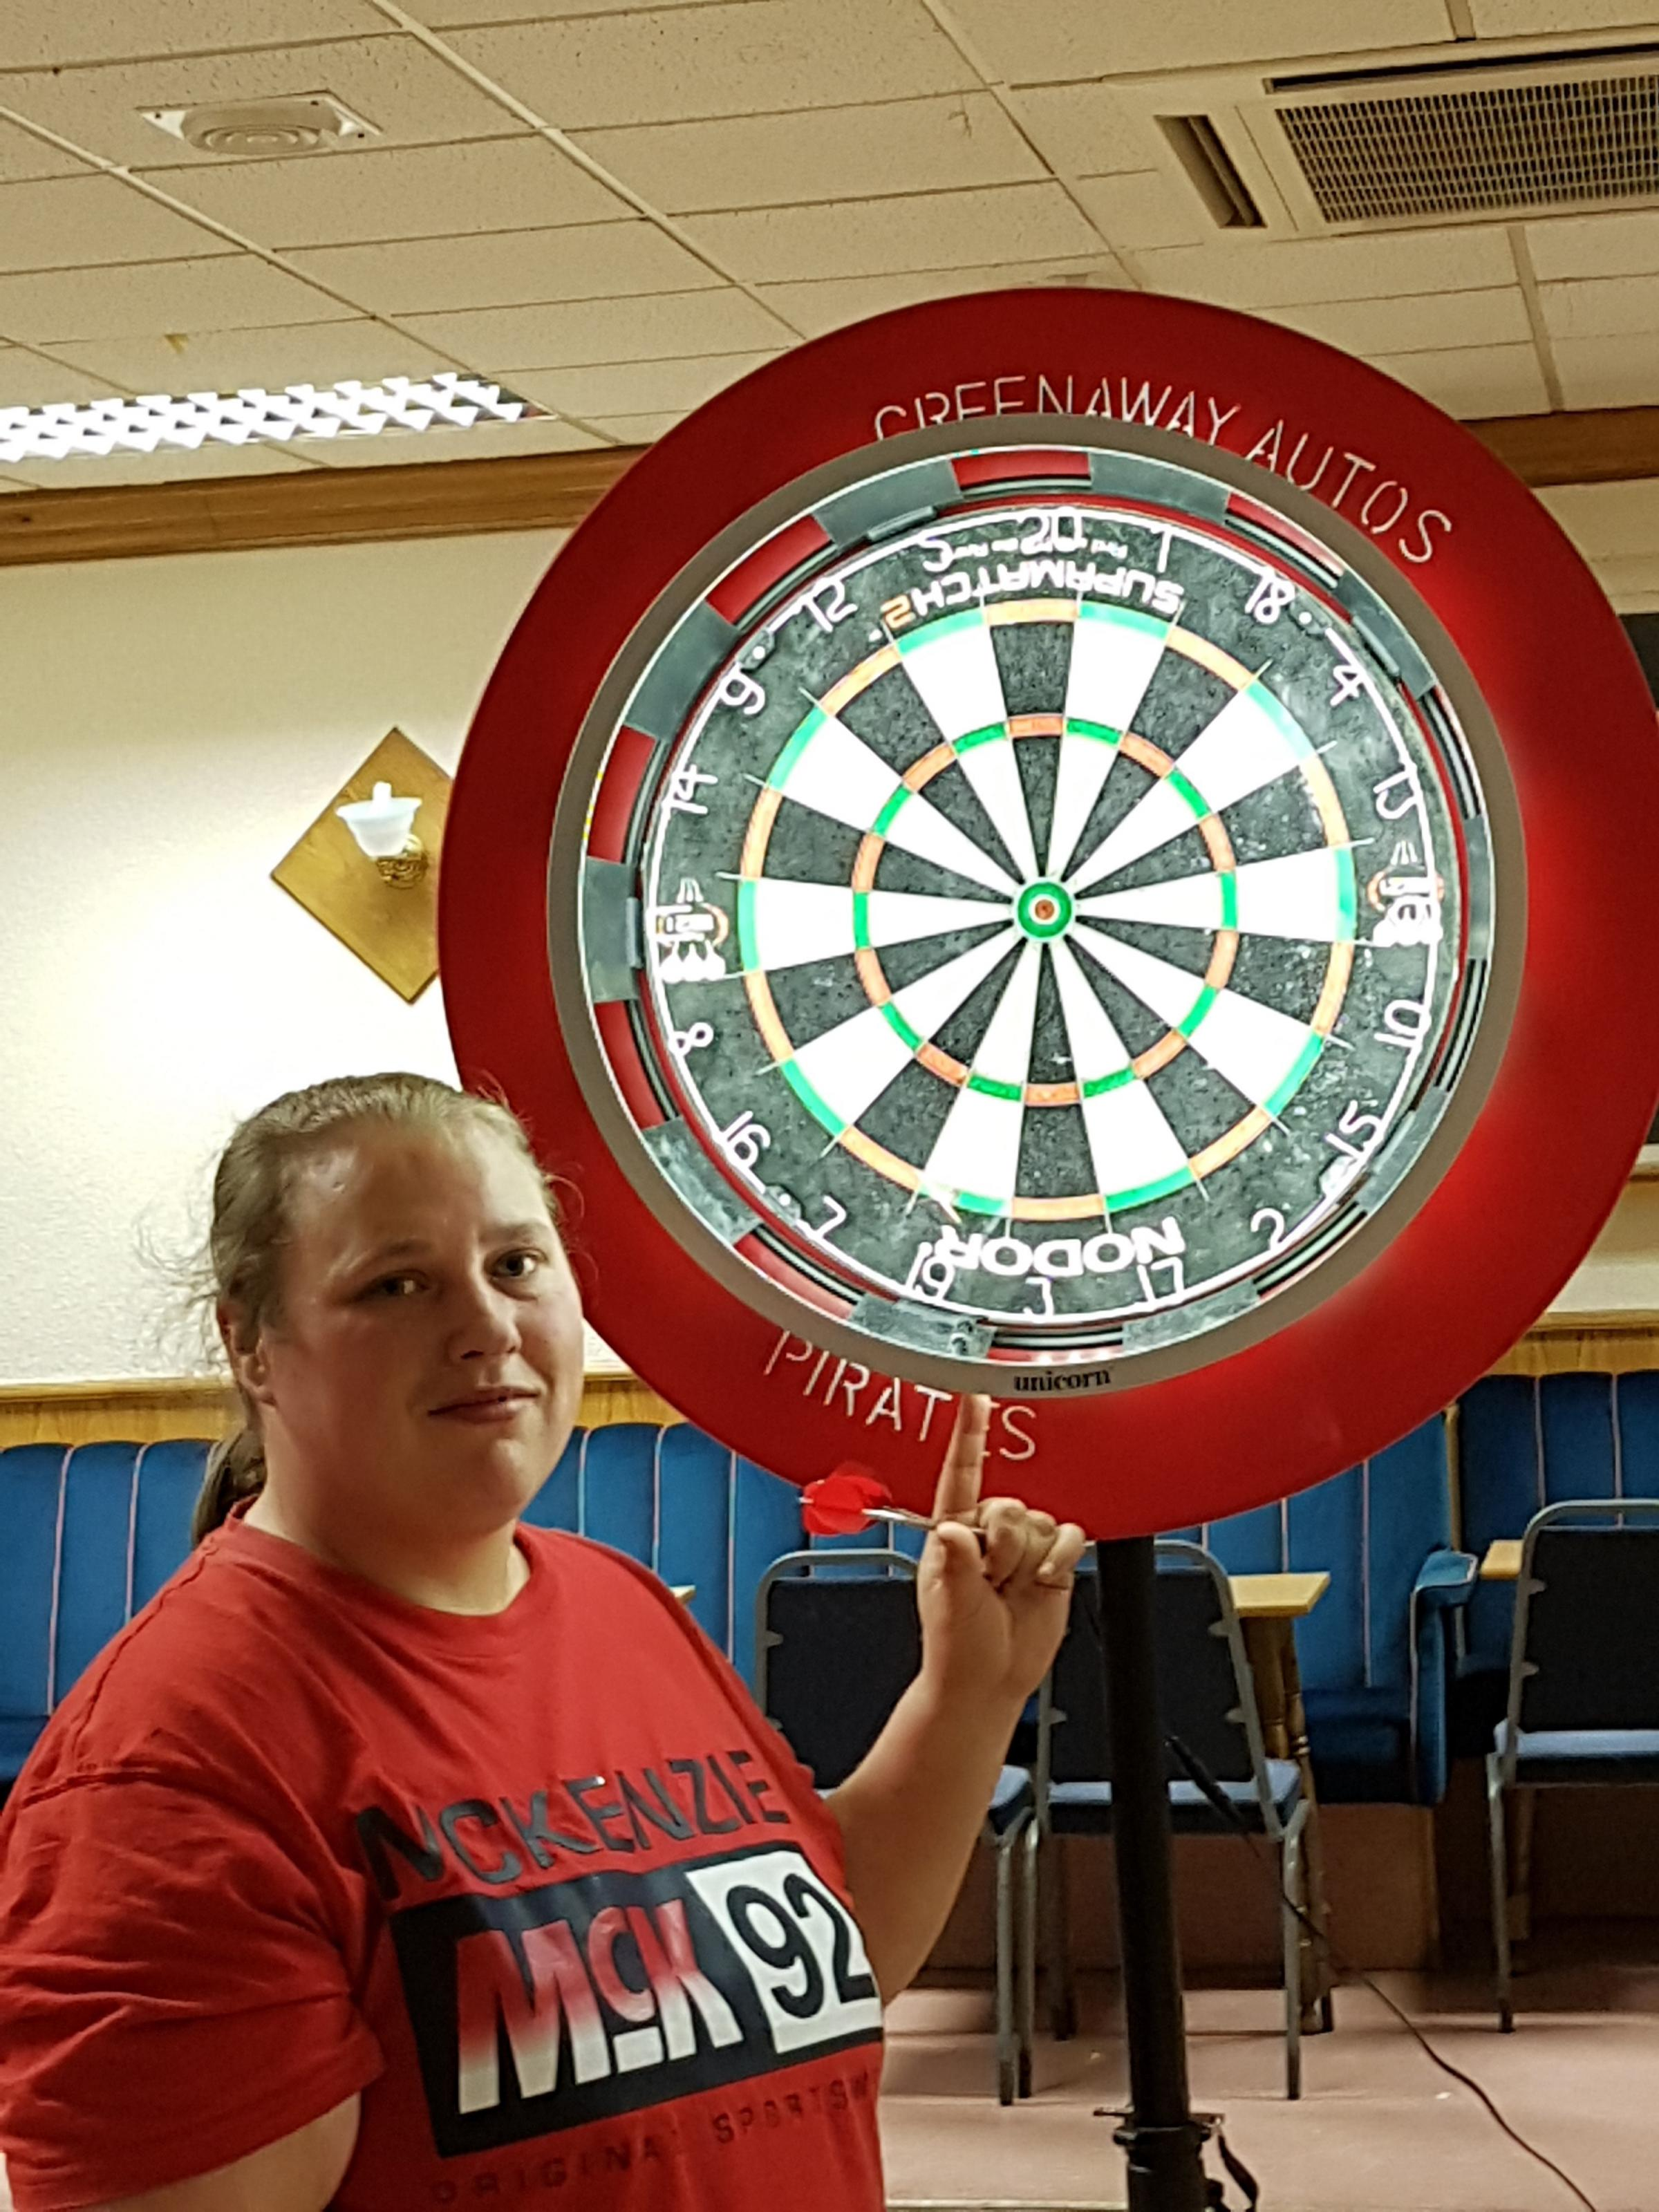 Marissa claimed her maiden victory with a double 19 checkout